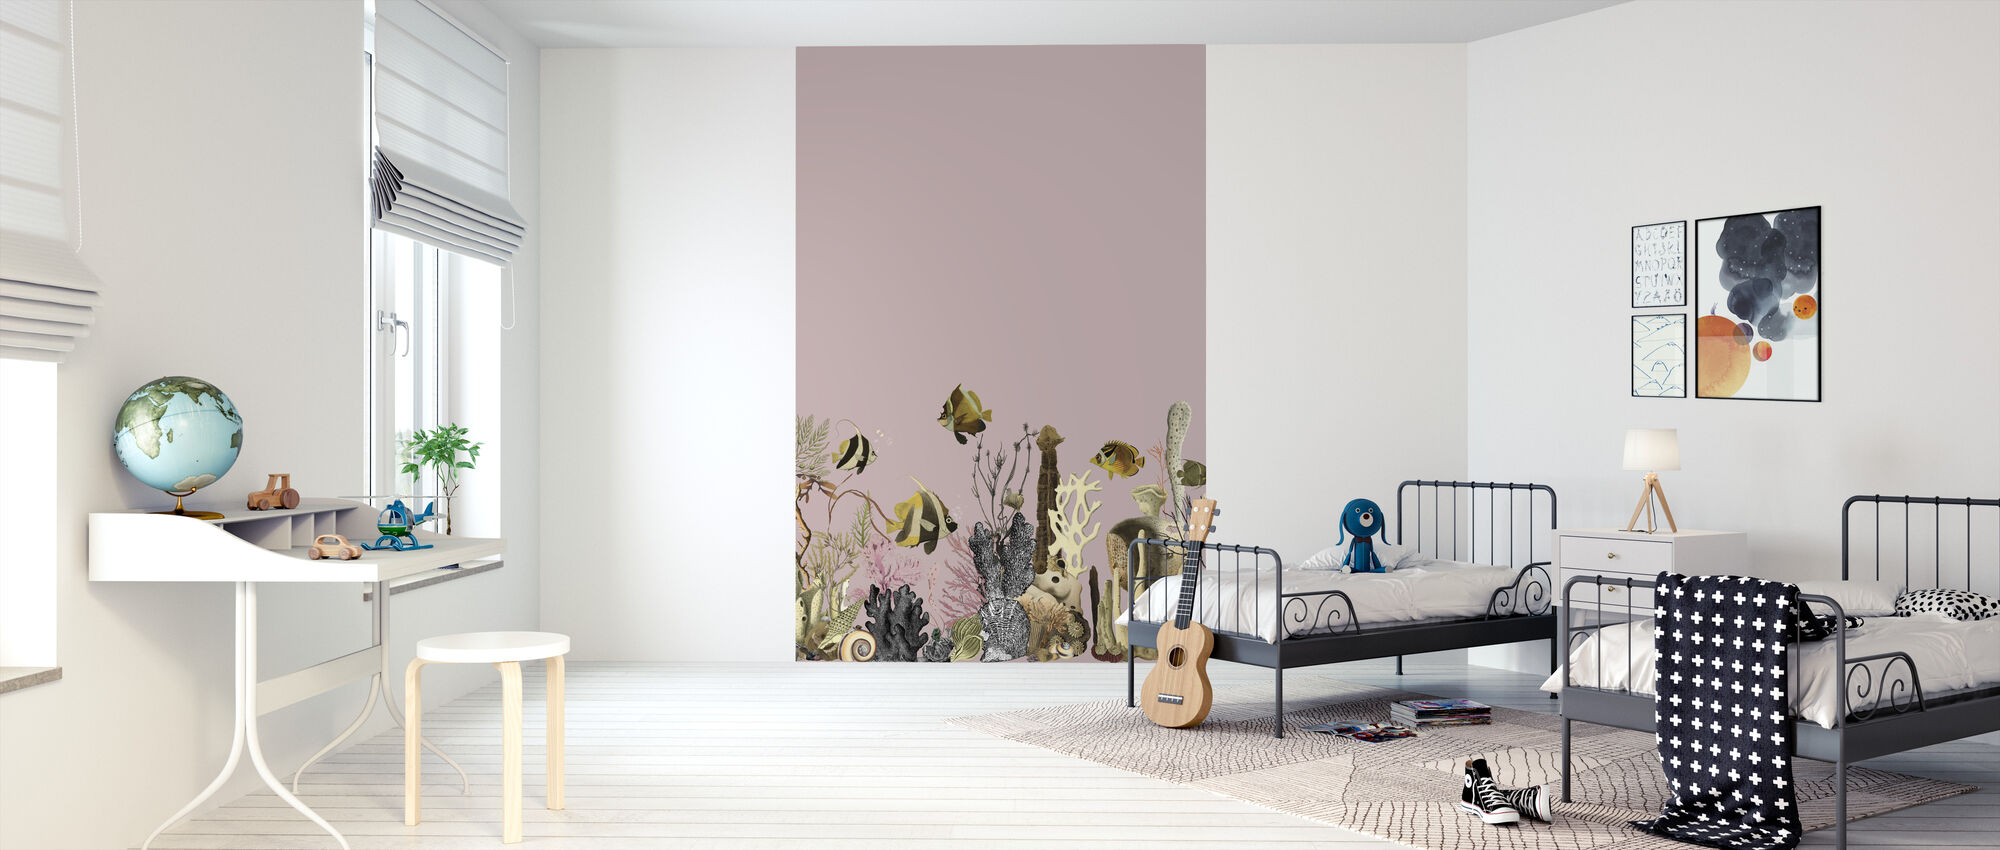 Aquarius - Mauve - Wallpaper - Kids Room